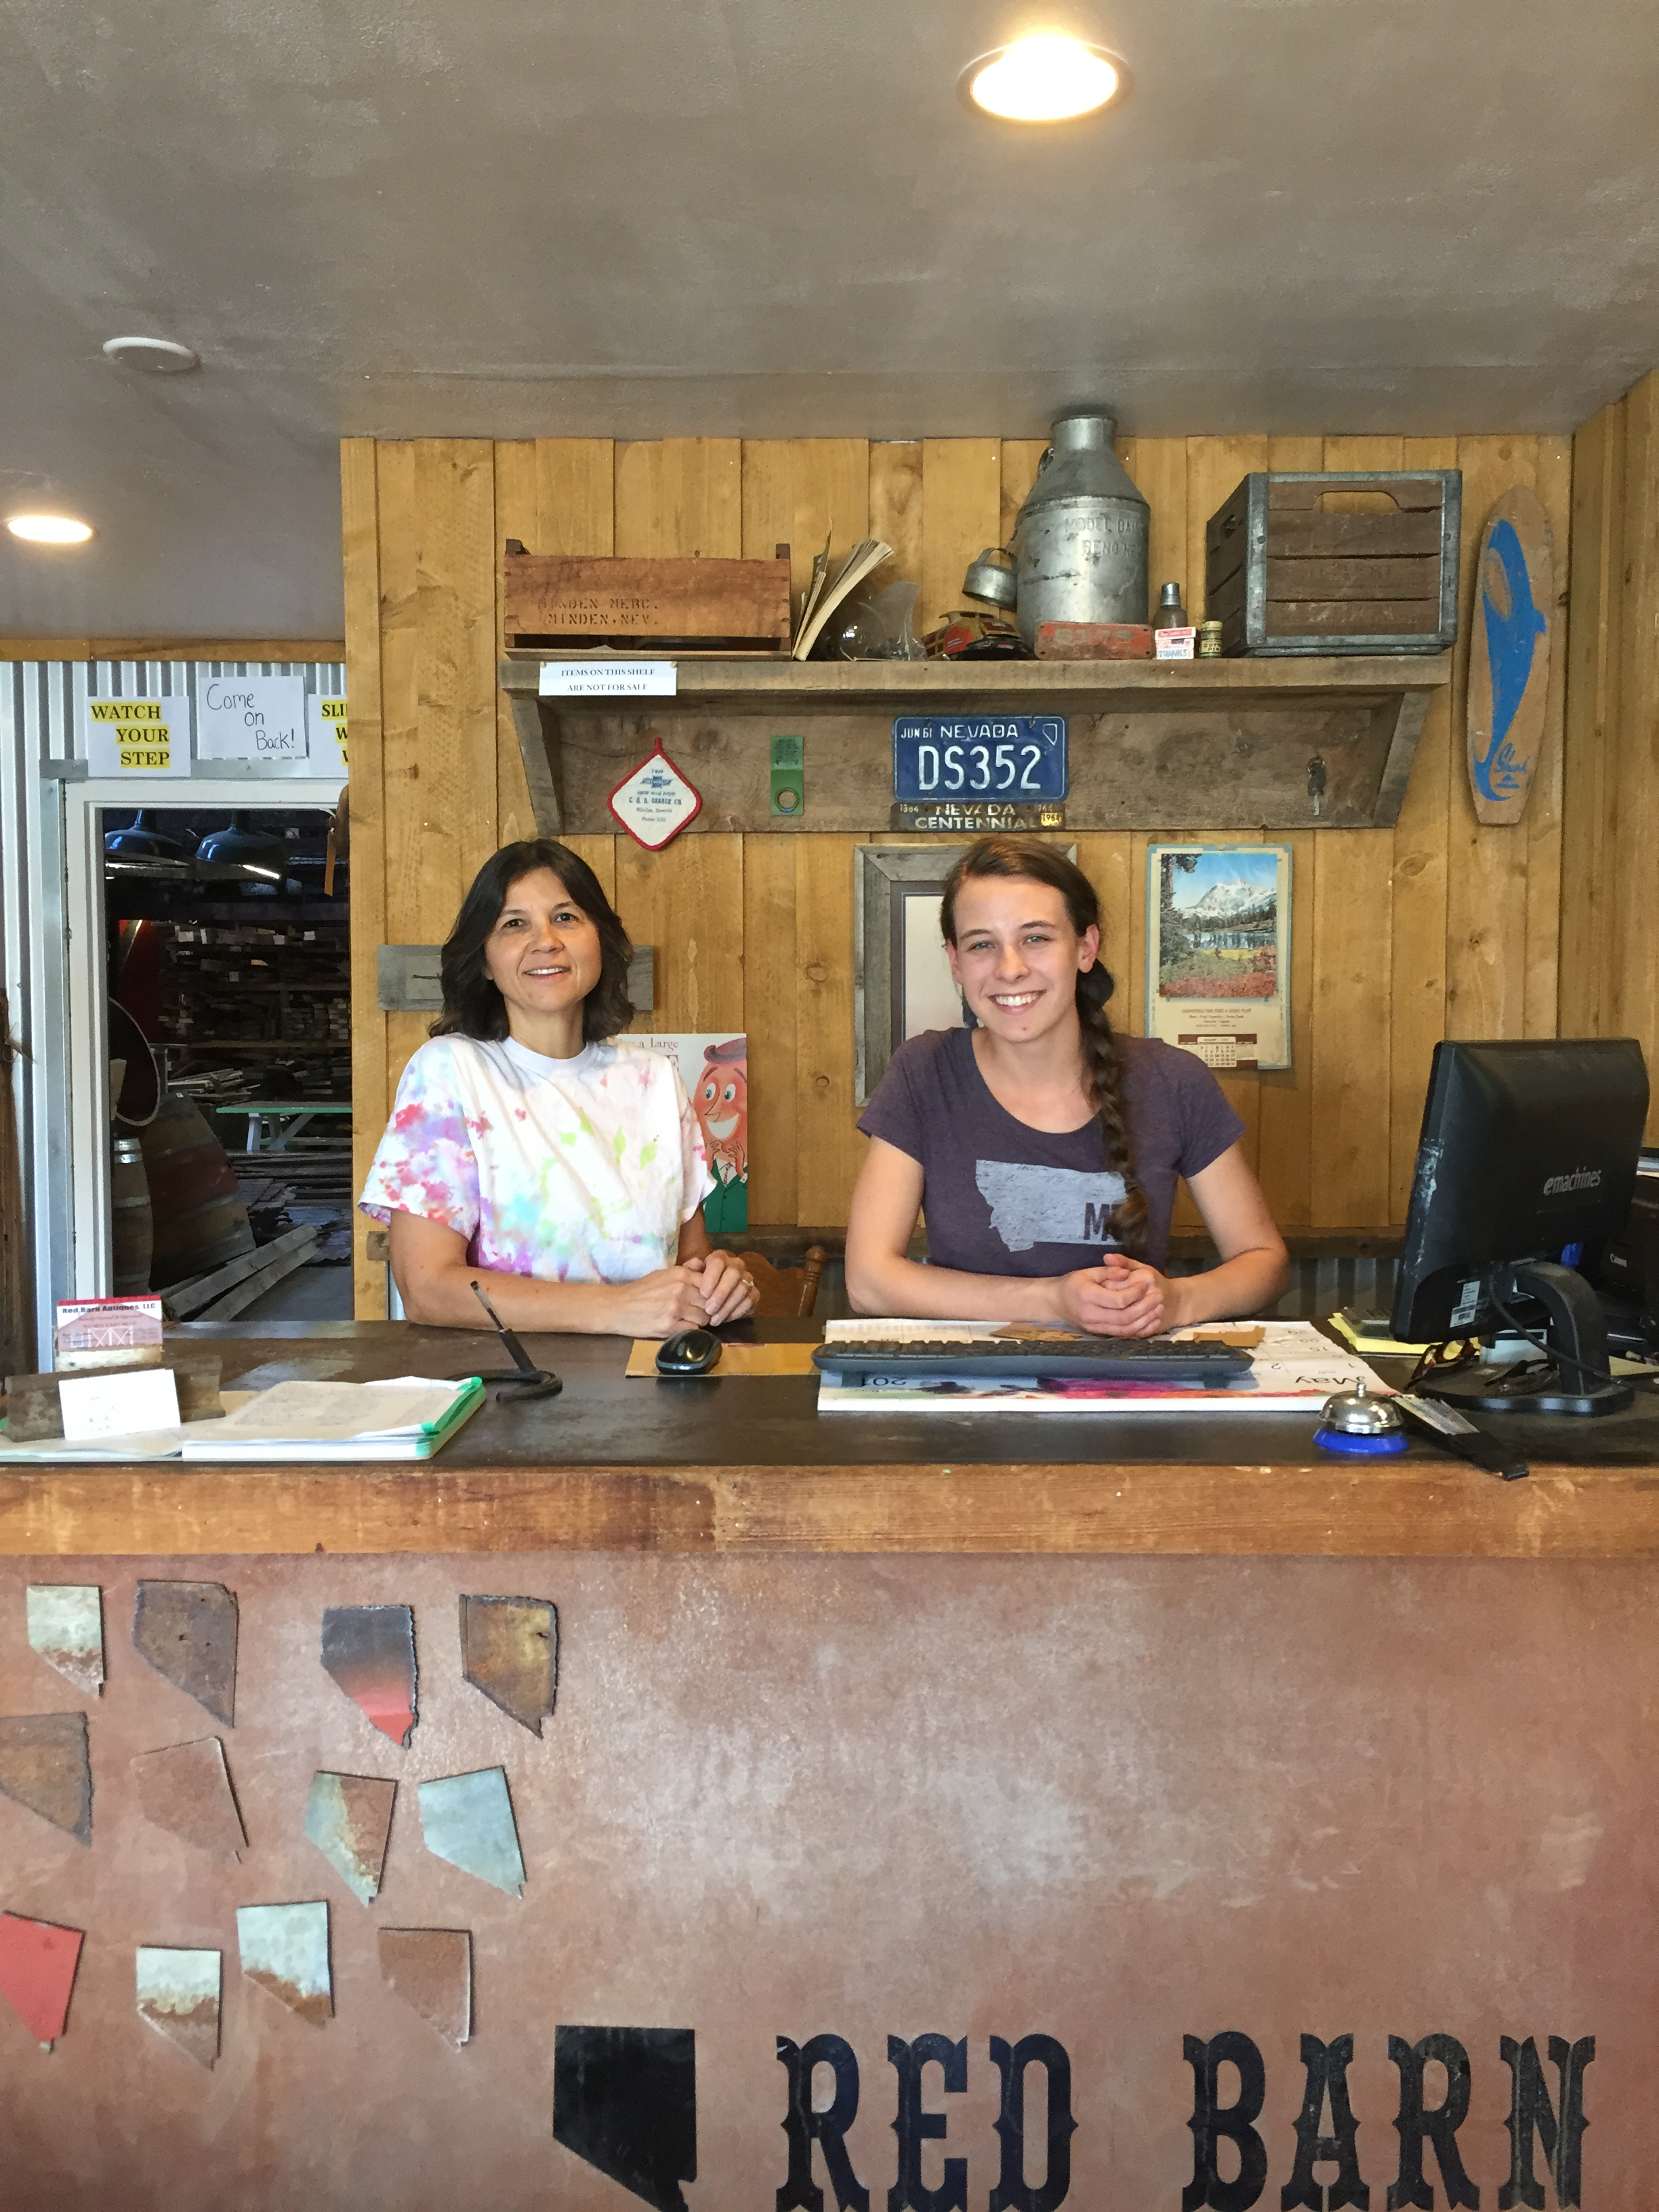 CINDY AND HALEY SIMPSON WORKING AT THE FRONT DESK